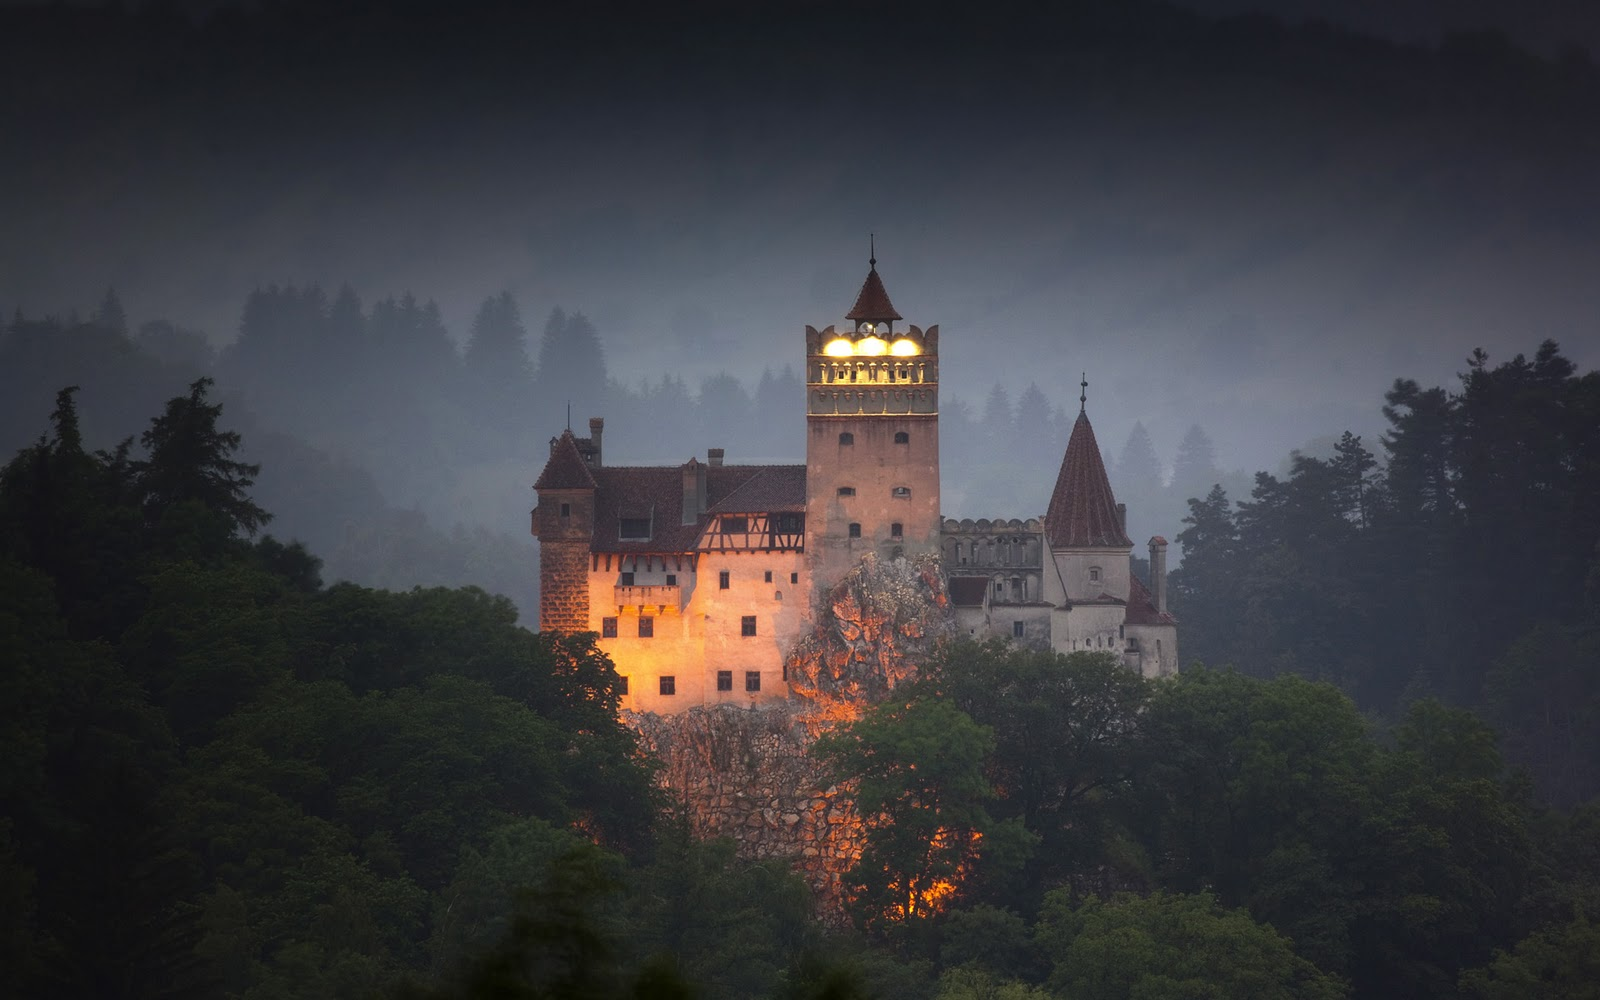 Bran Castle. http://thewondrous.com/wp-content/uploads/2014/09/The-Eerie-Bran-Castle-In-Transylvania.jpg